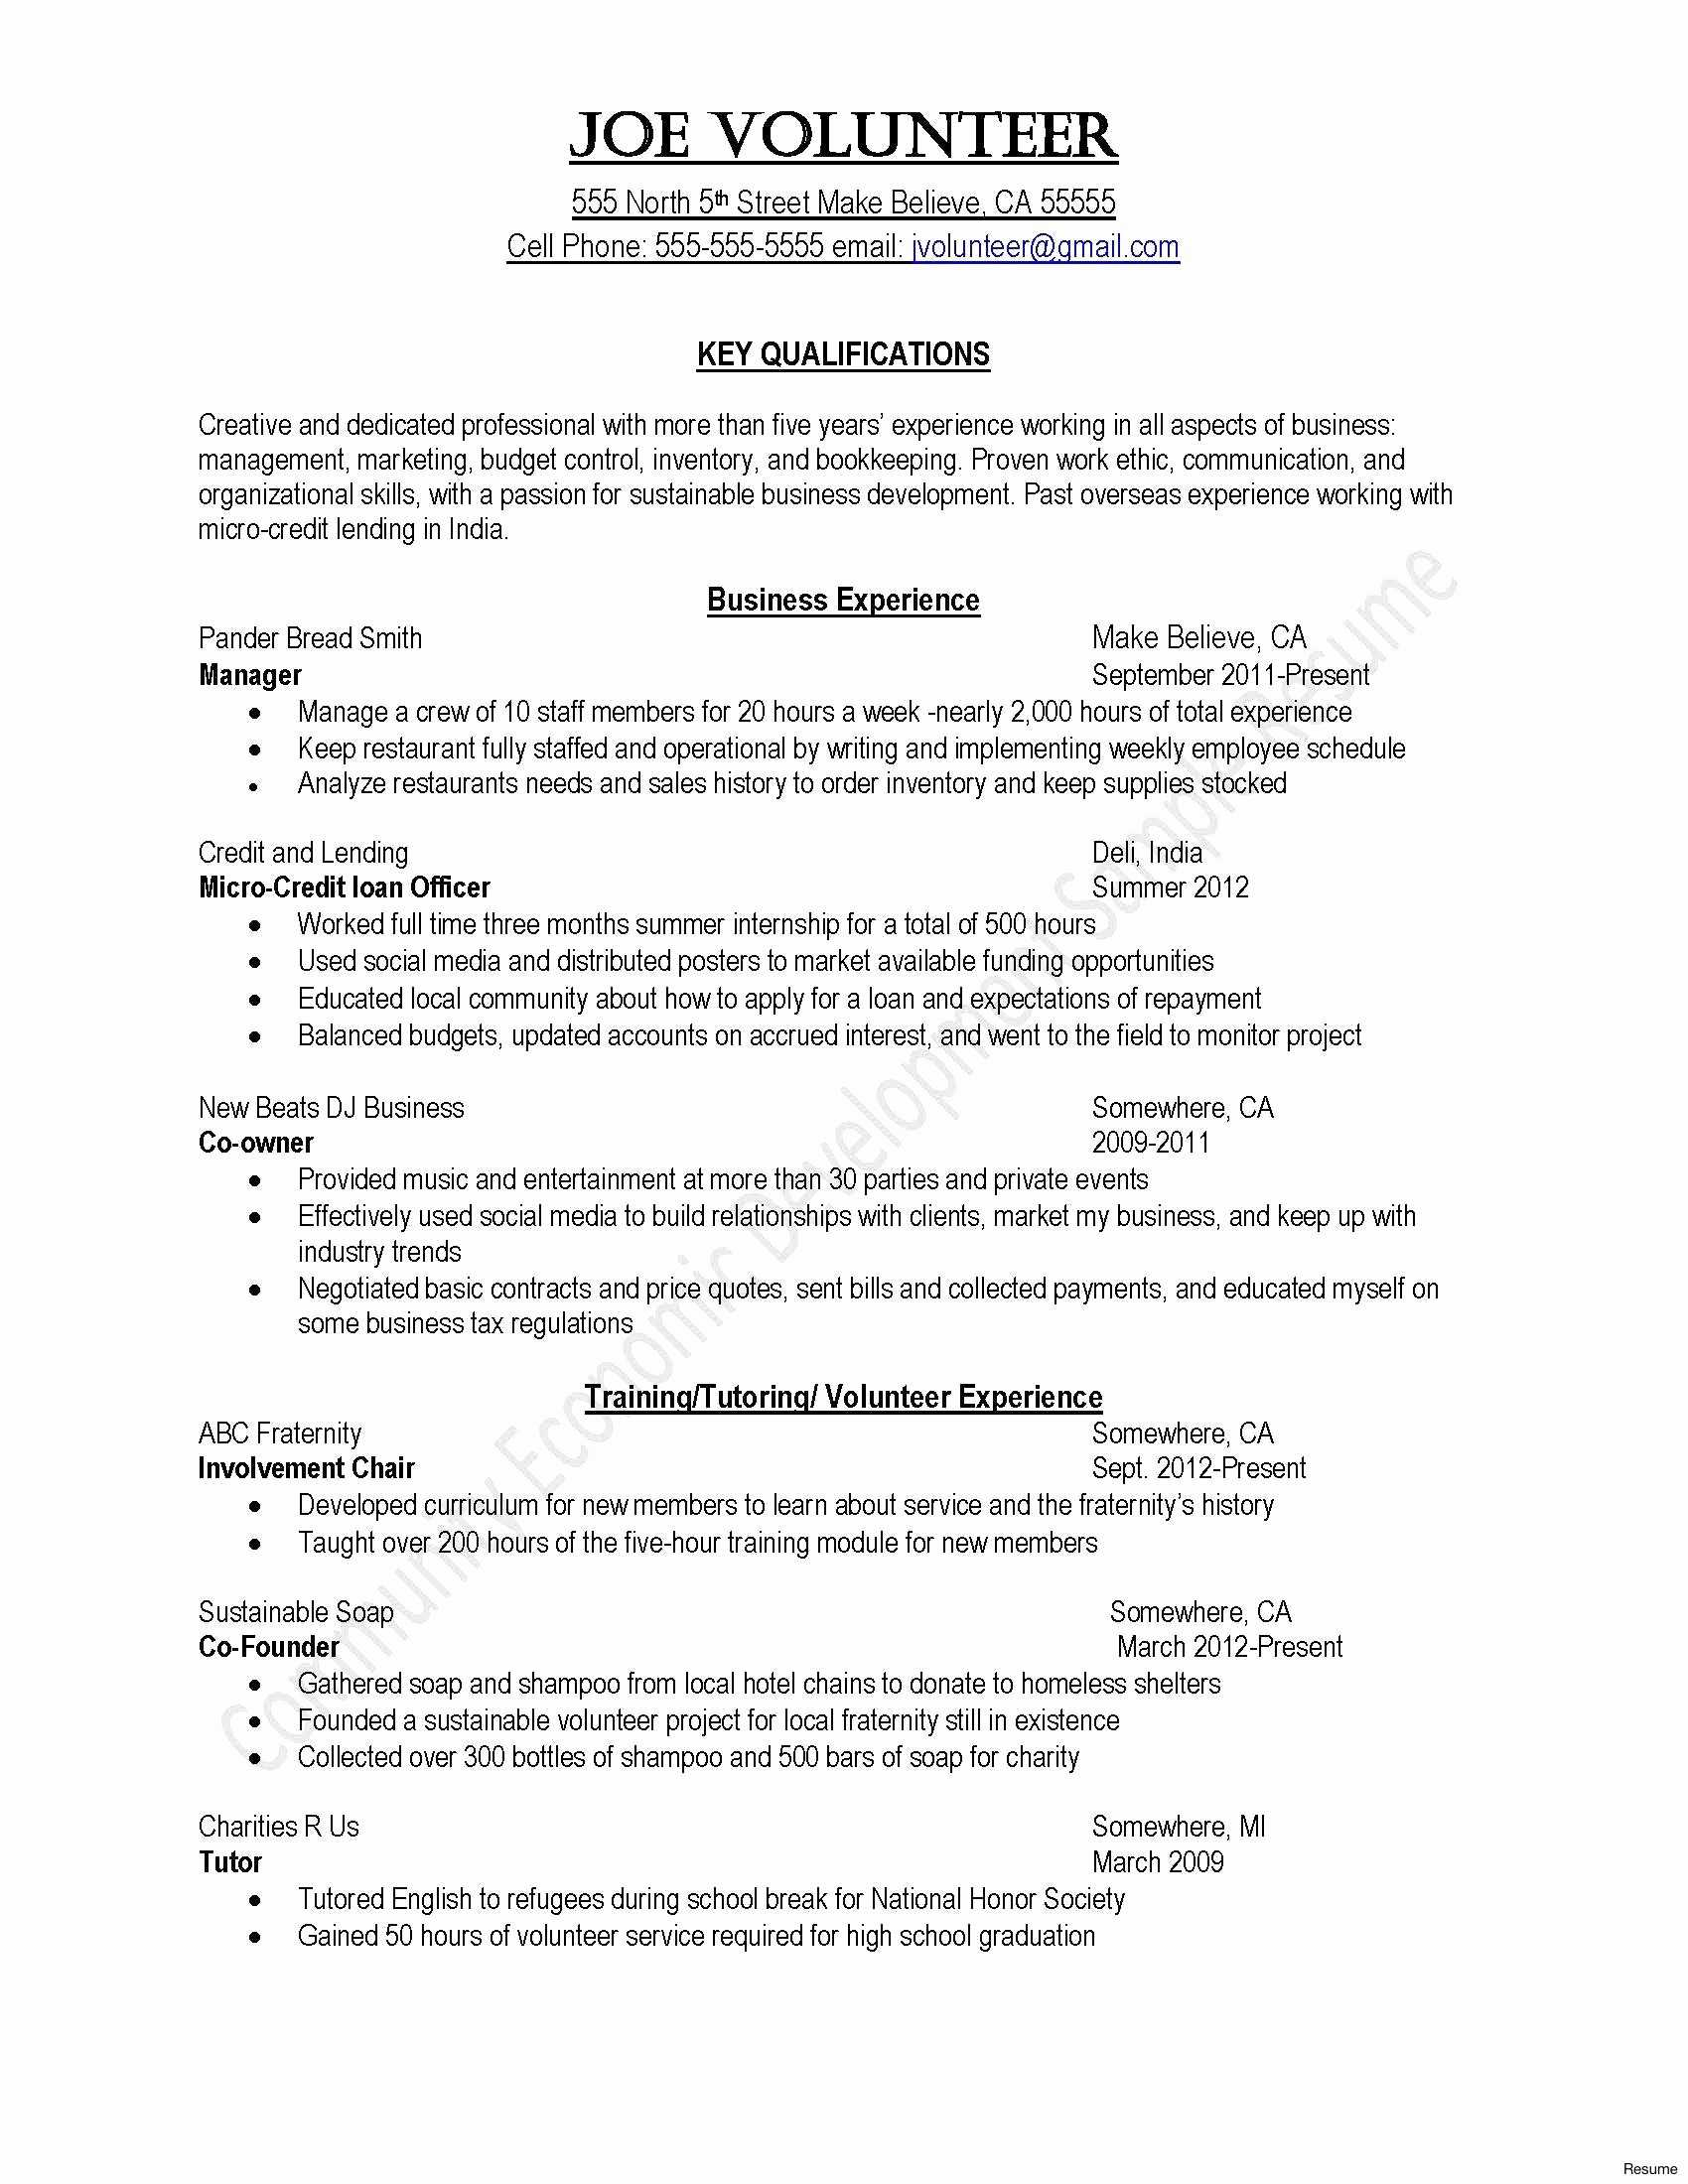 Repayment Agreement Letter Template - Payment Agreement Letter Between Two Parties Unique Artist Resume